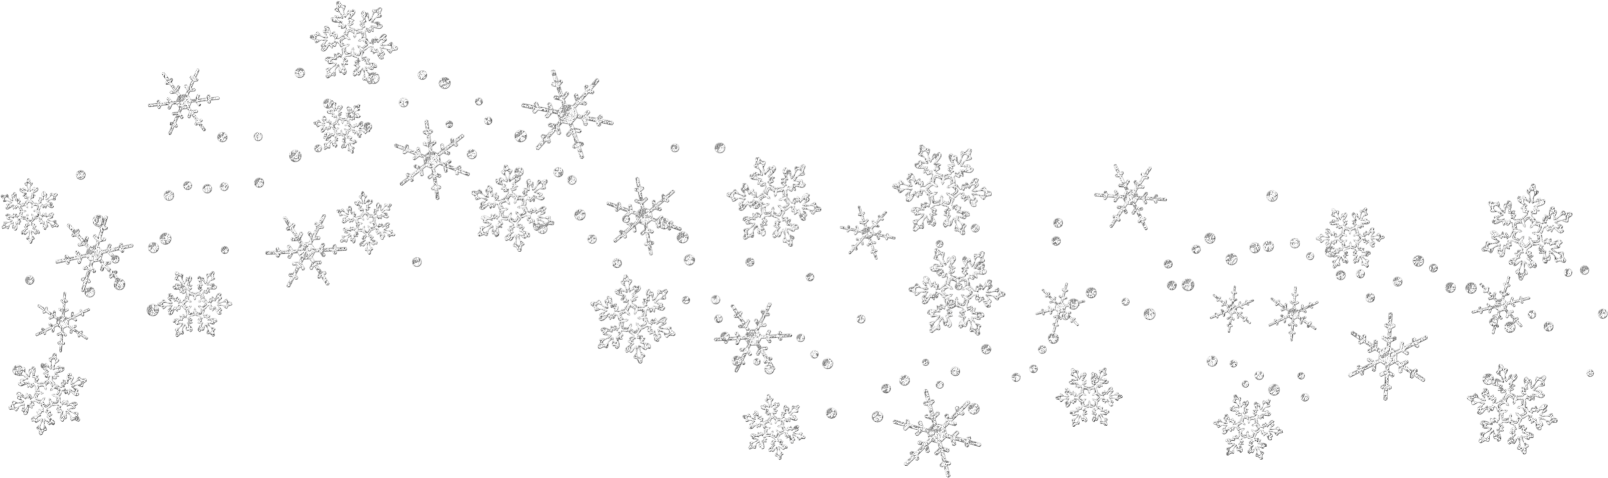 Snowflake clipart border clipart black and white stock 28+ Collection of Snowflake Trail Clipart | High quality, free ... clipart black and white stock